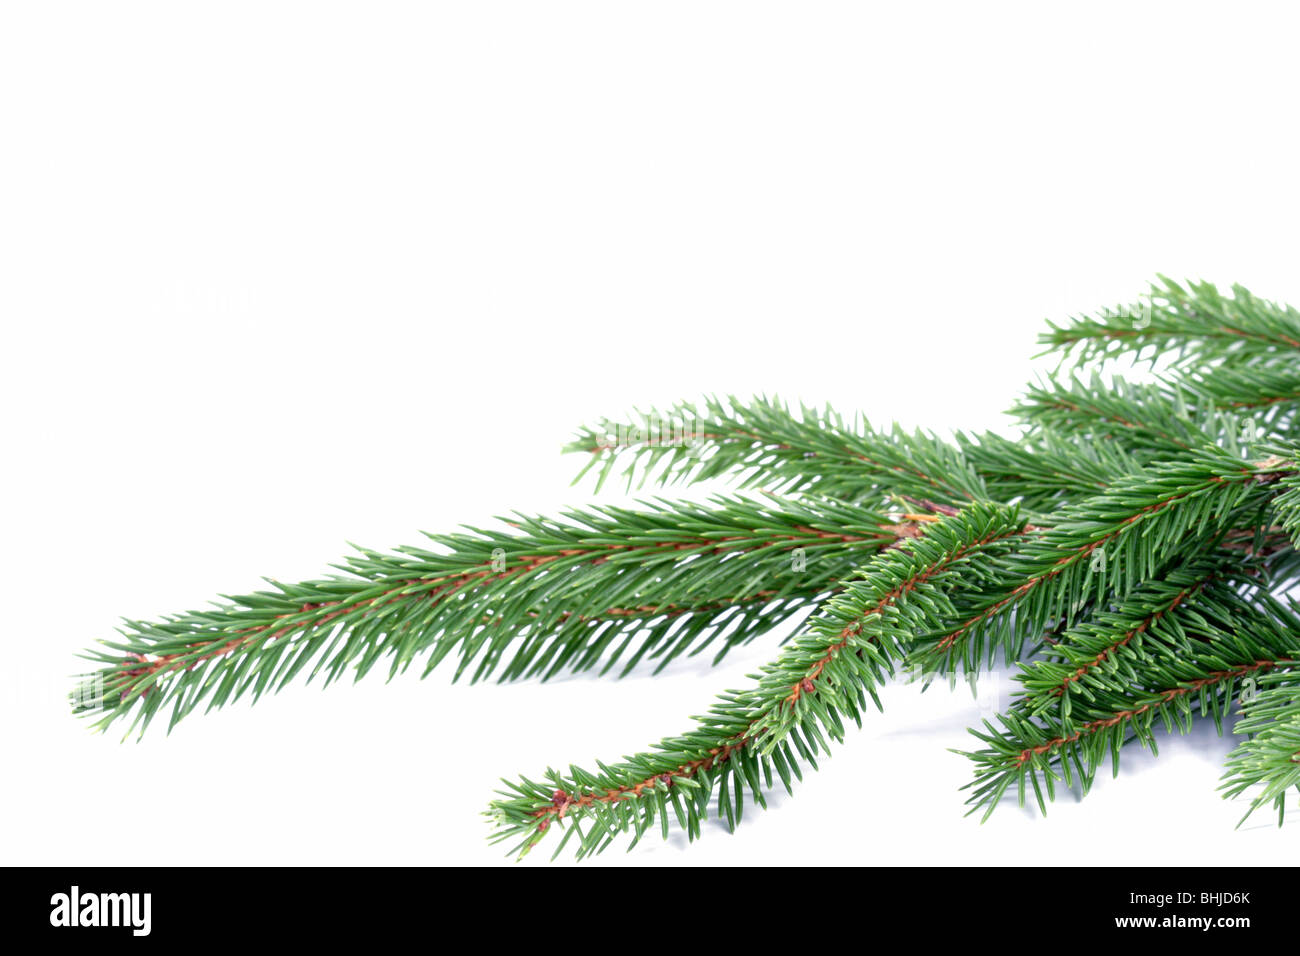 Composition from spruce twigs on the white background - Stock Image